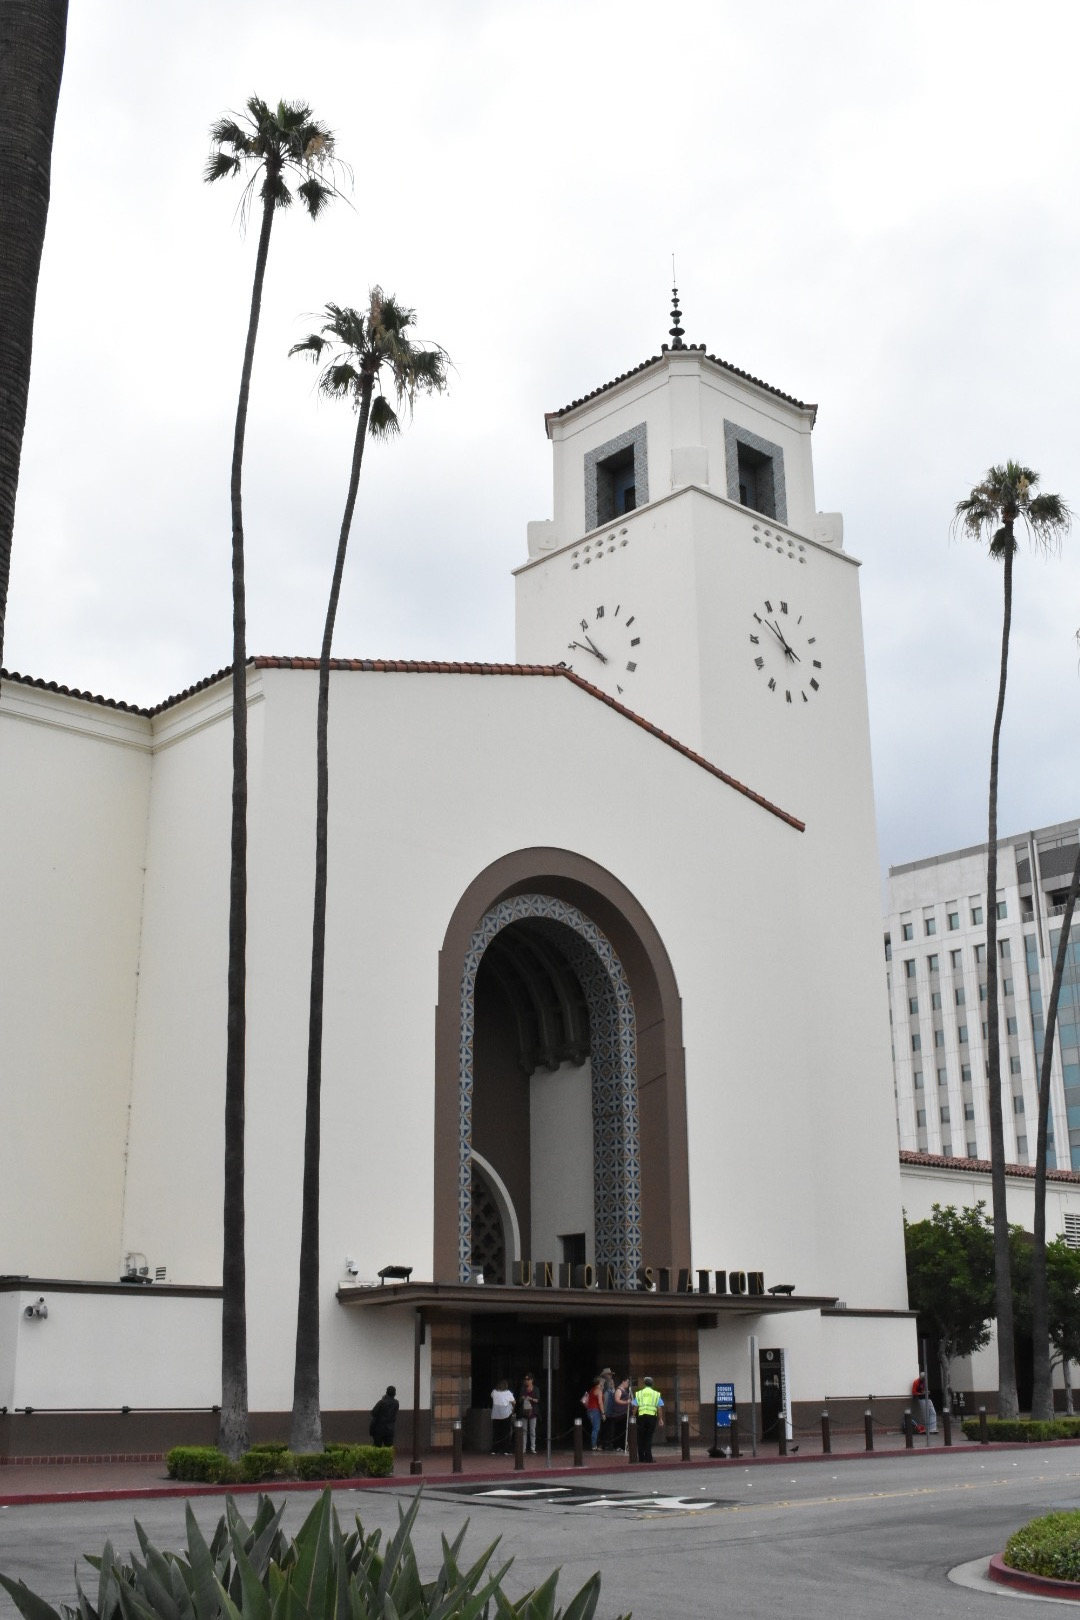 Los Angeles Union Station - The largest in the western US